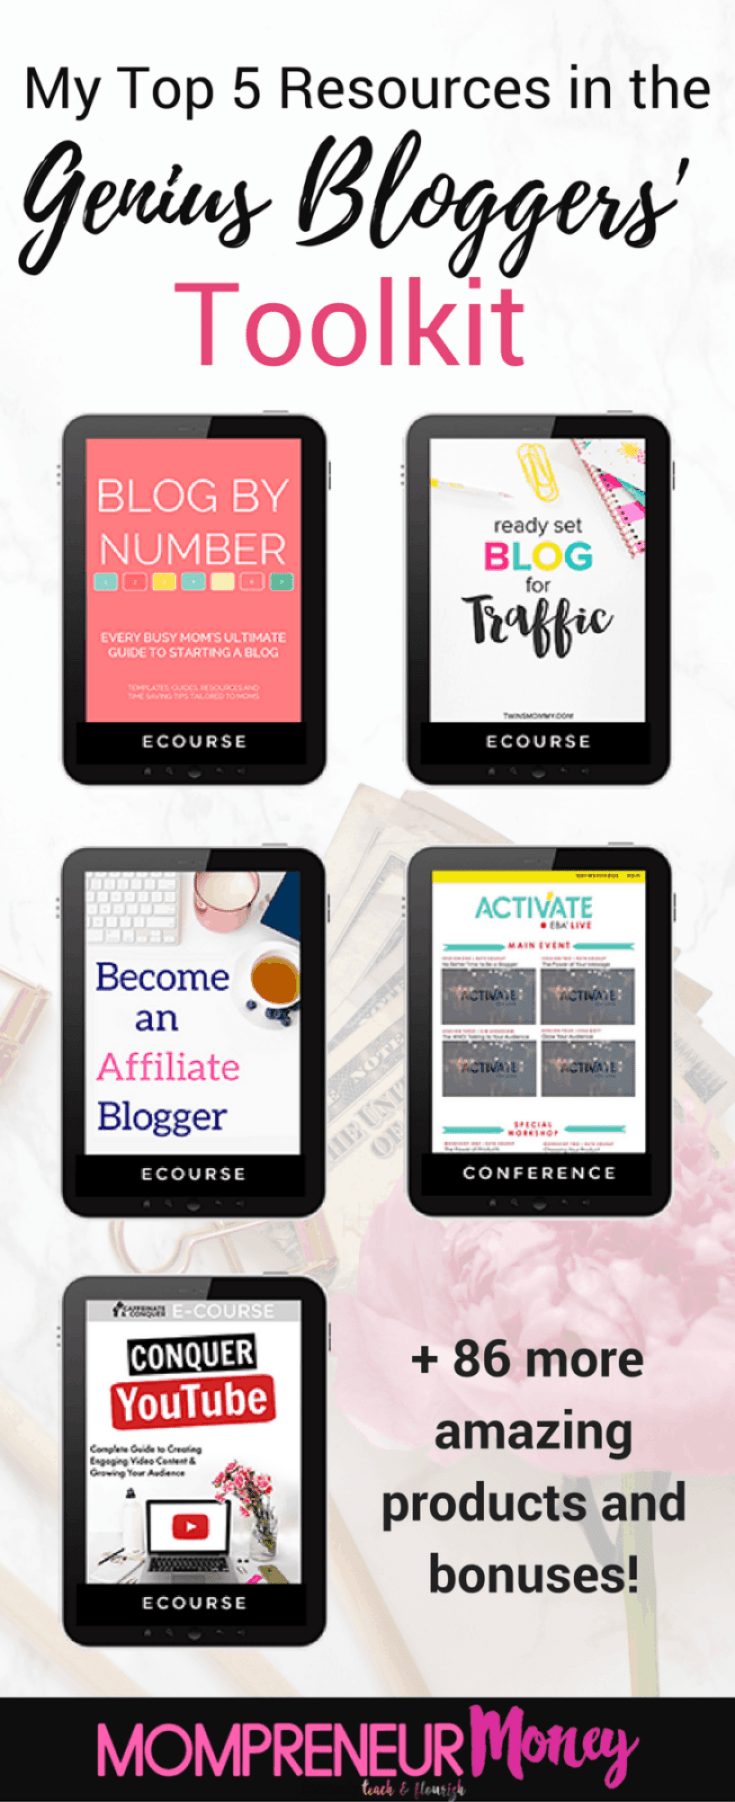 My Top 5 Resources From The 2017 Genius Bloggers Toolkit